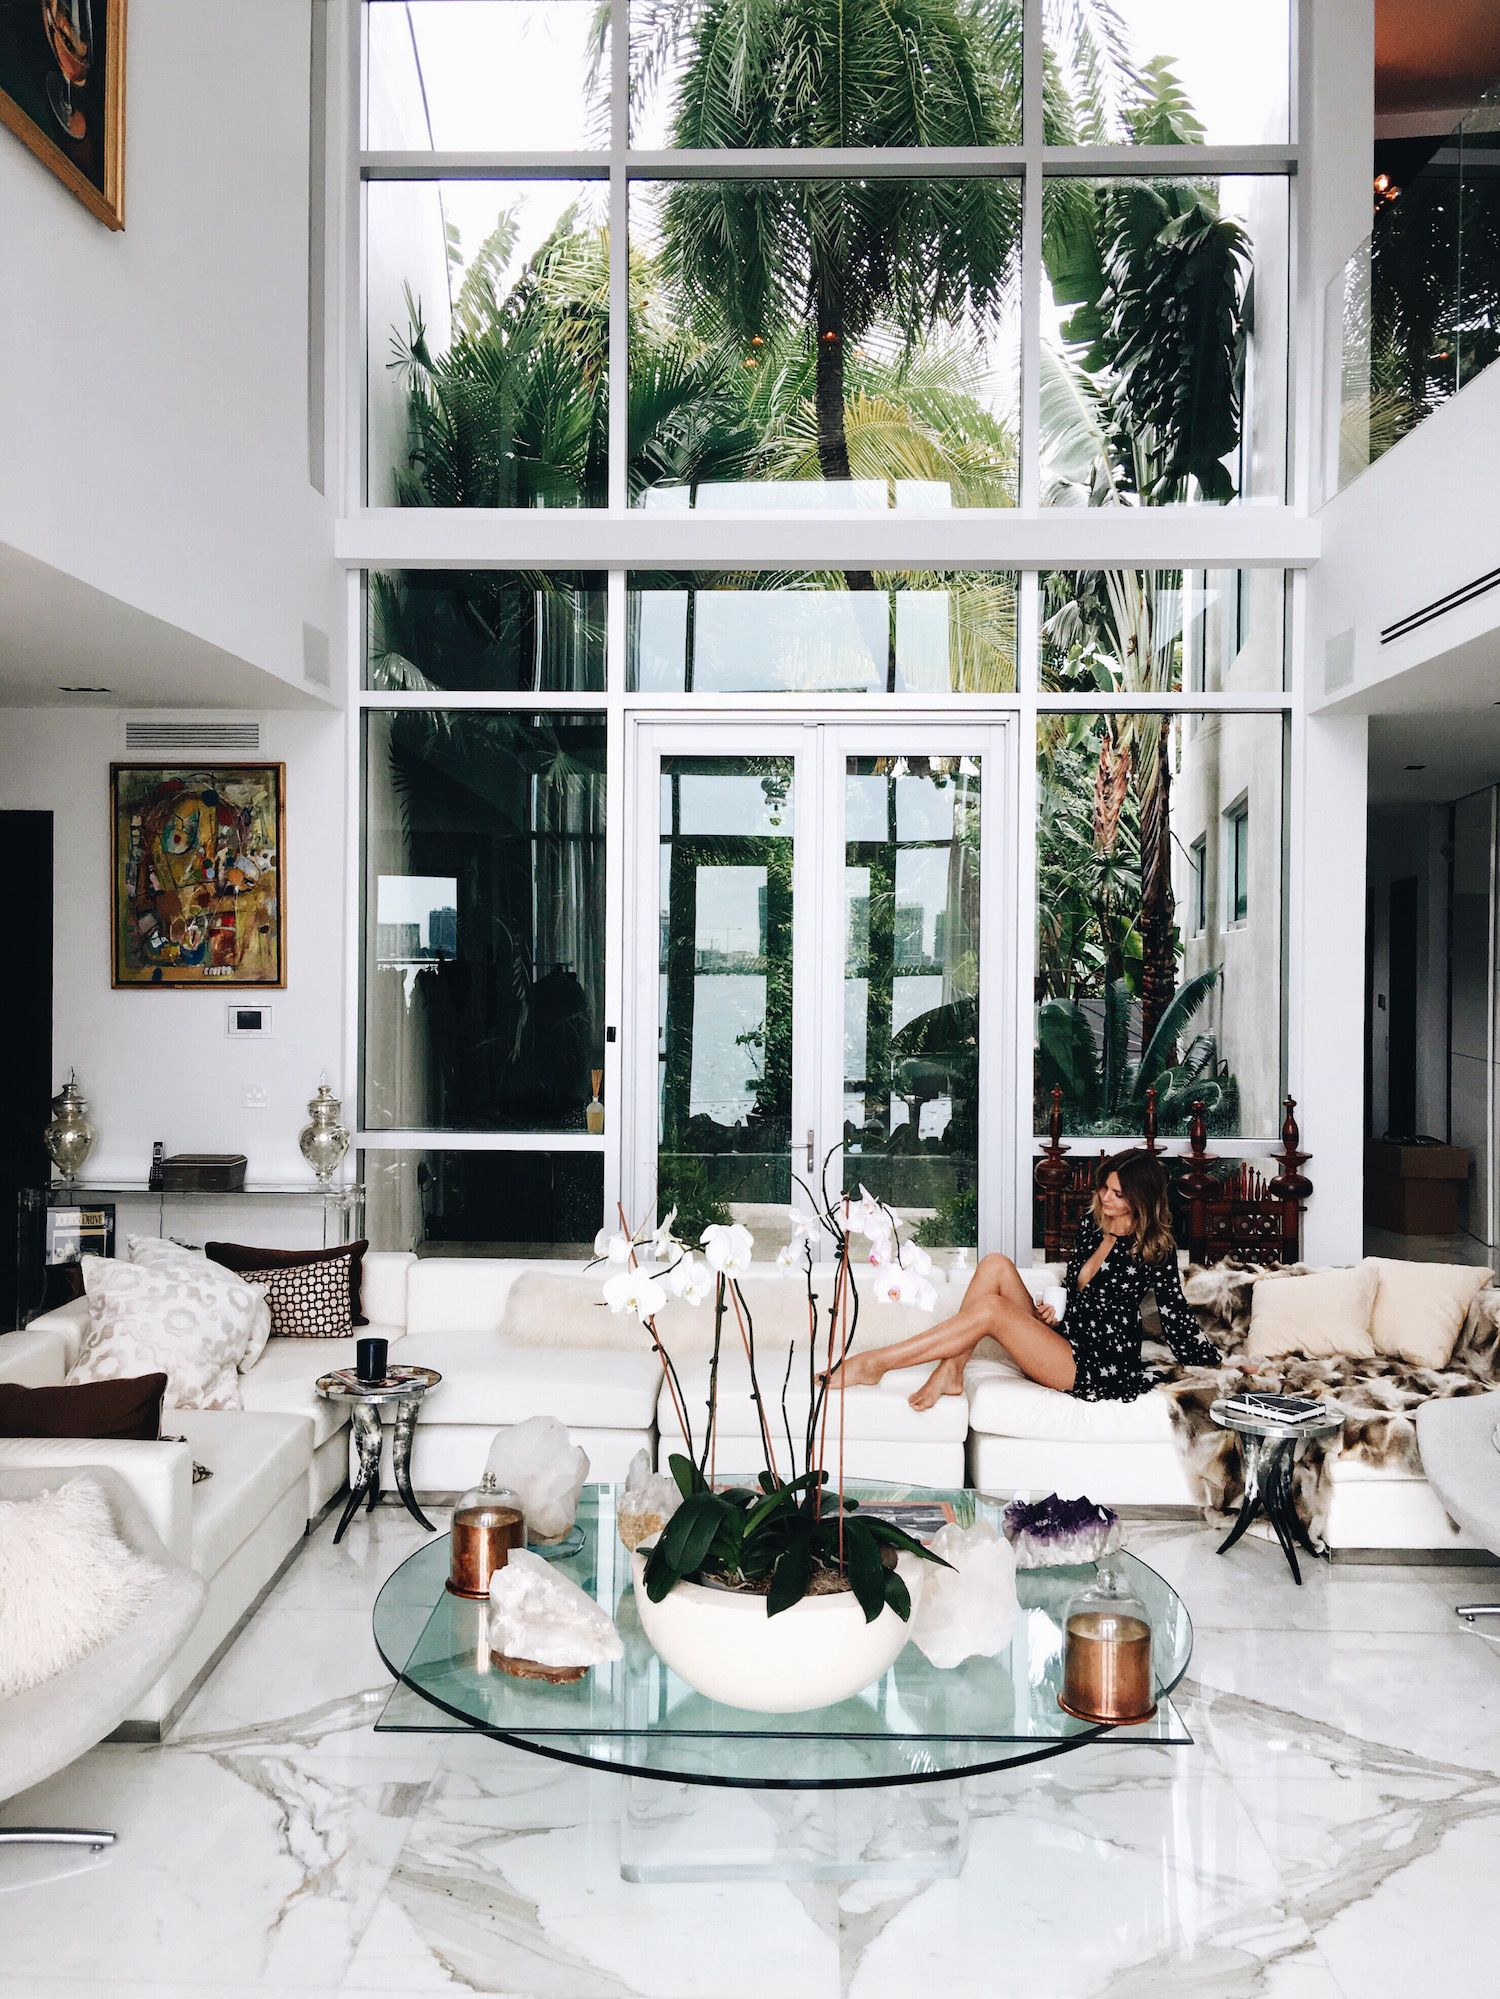 living group london miami 1000 ideas about houses in miami on pinterest soho beach house hanging picture frames and modern apartments